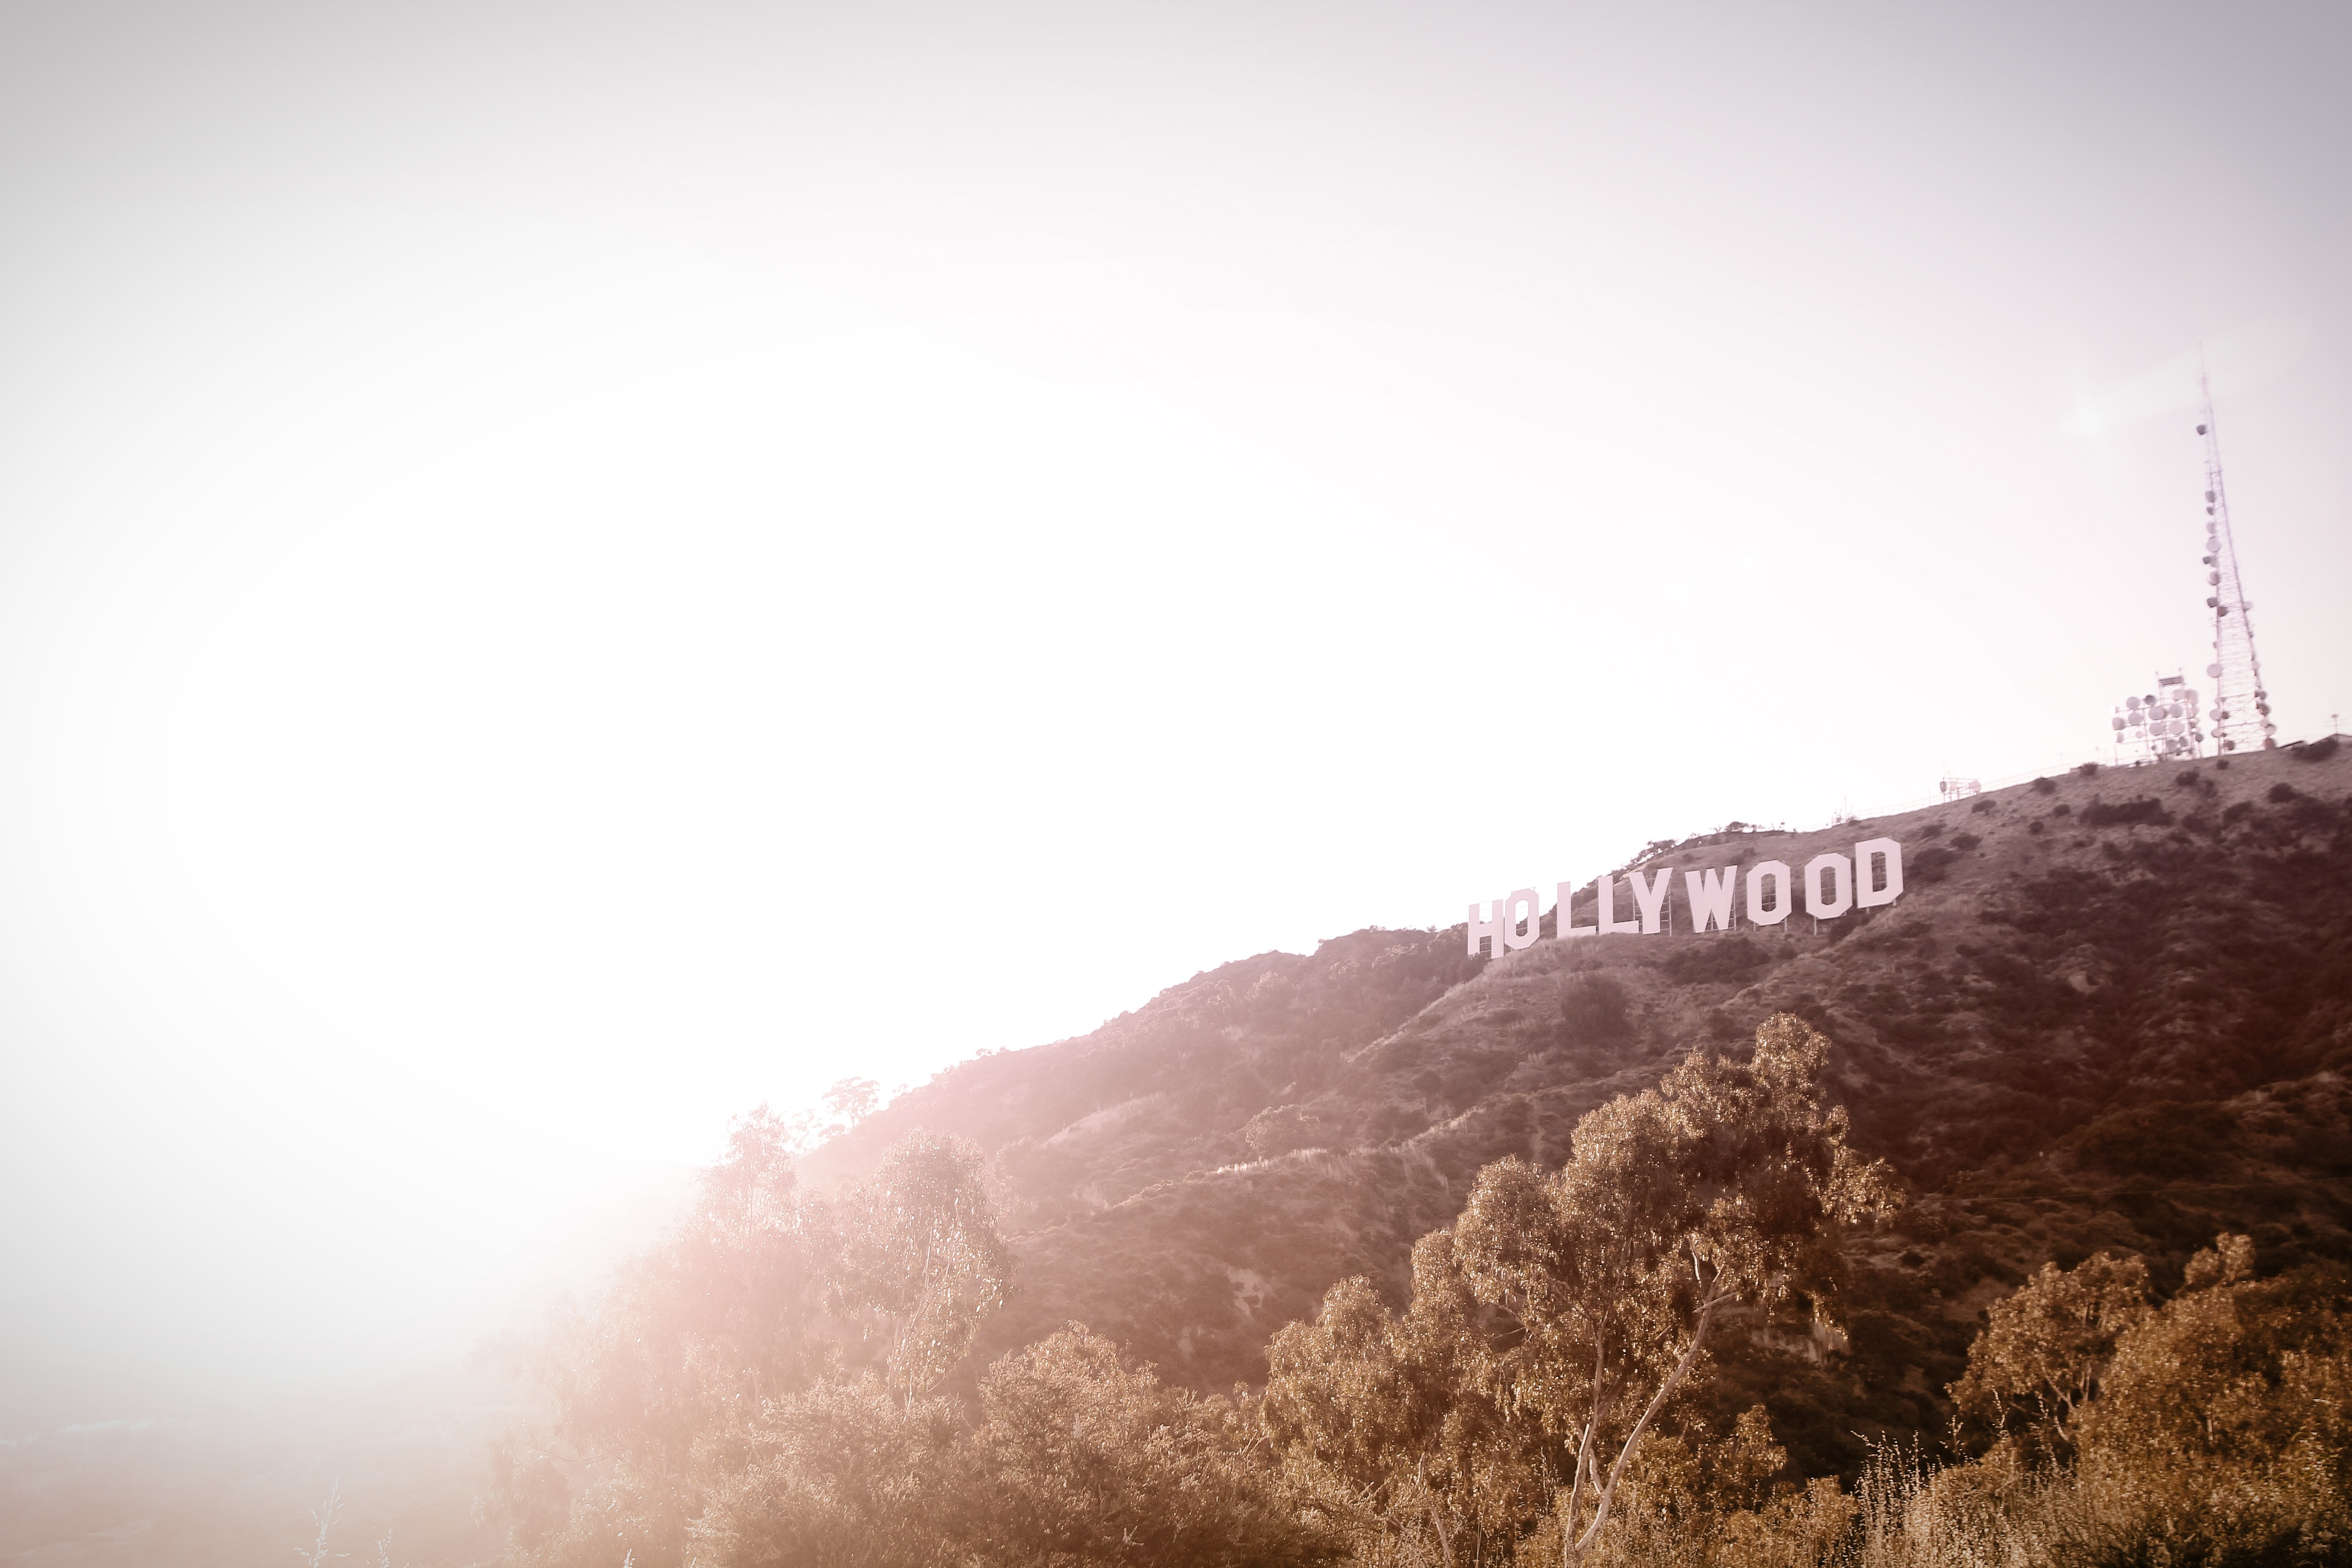 Bright white sunset next to the Hollywood sign